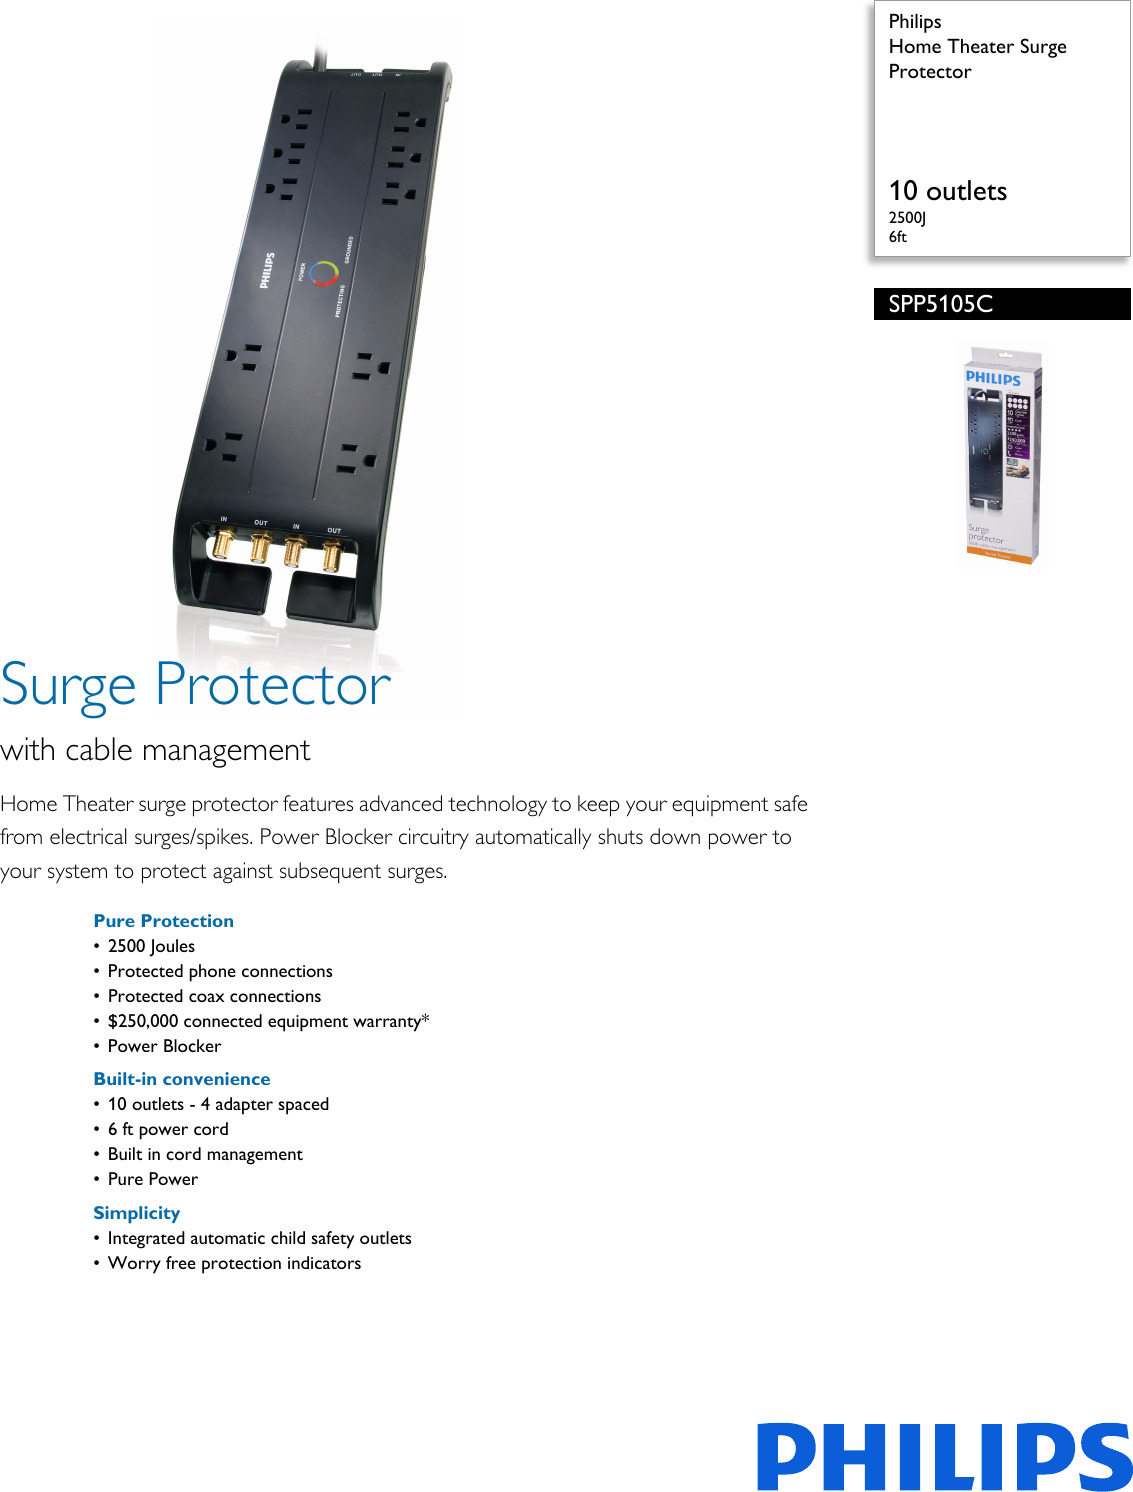 philips spp5105c 17 home theater surge protector user manual leaflet rh usermanual wiki New Home Phone 2012 Best Home Phone System